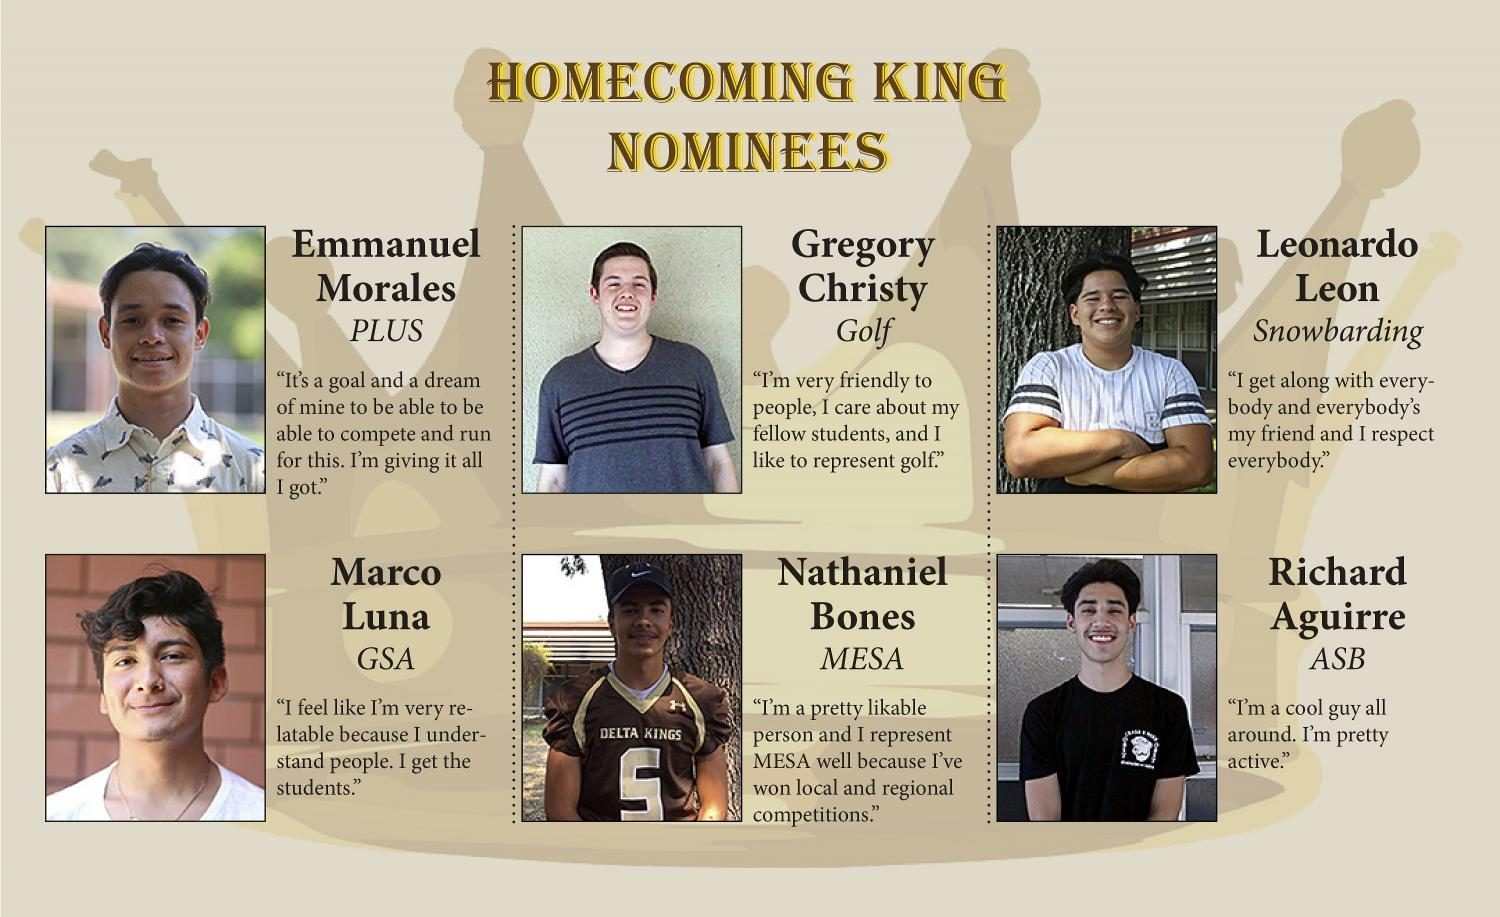 Homecoming King Nominees for 2017